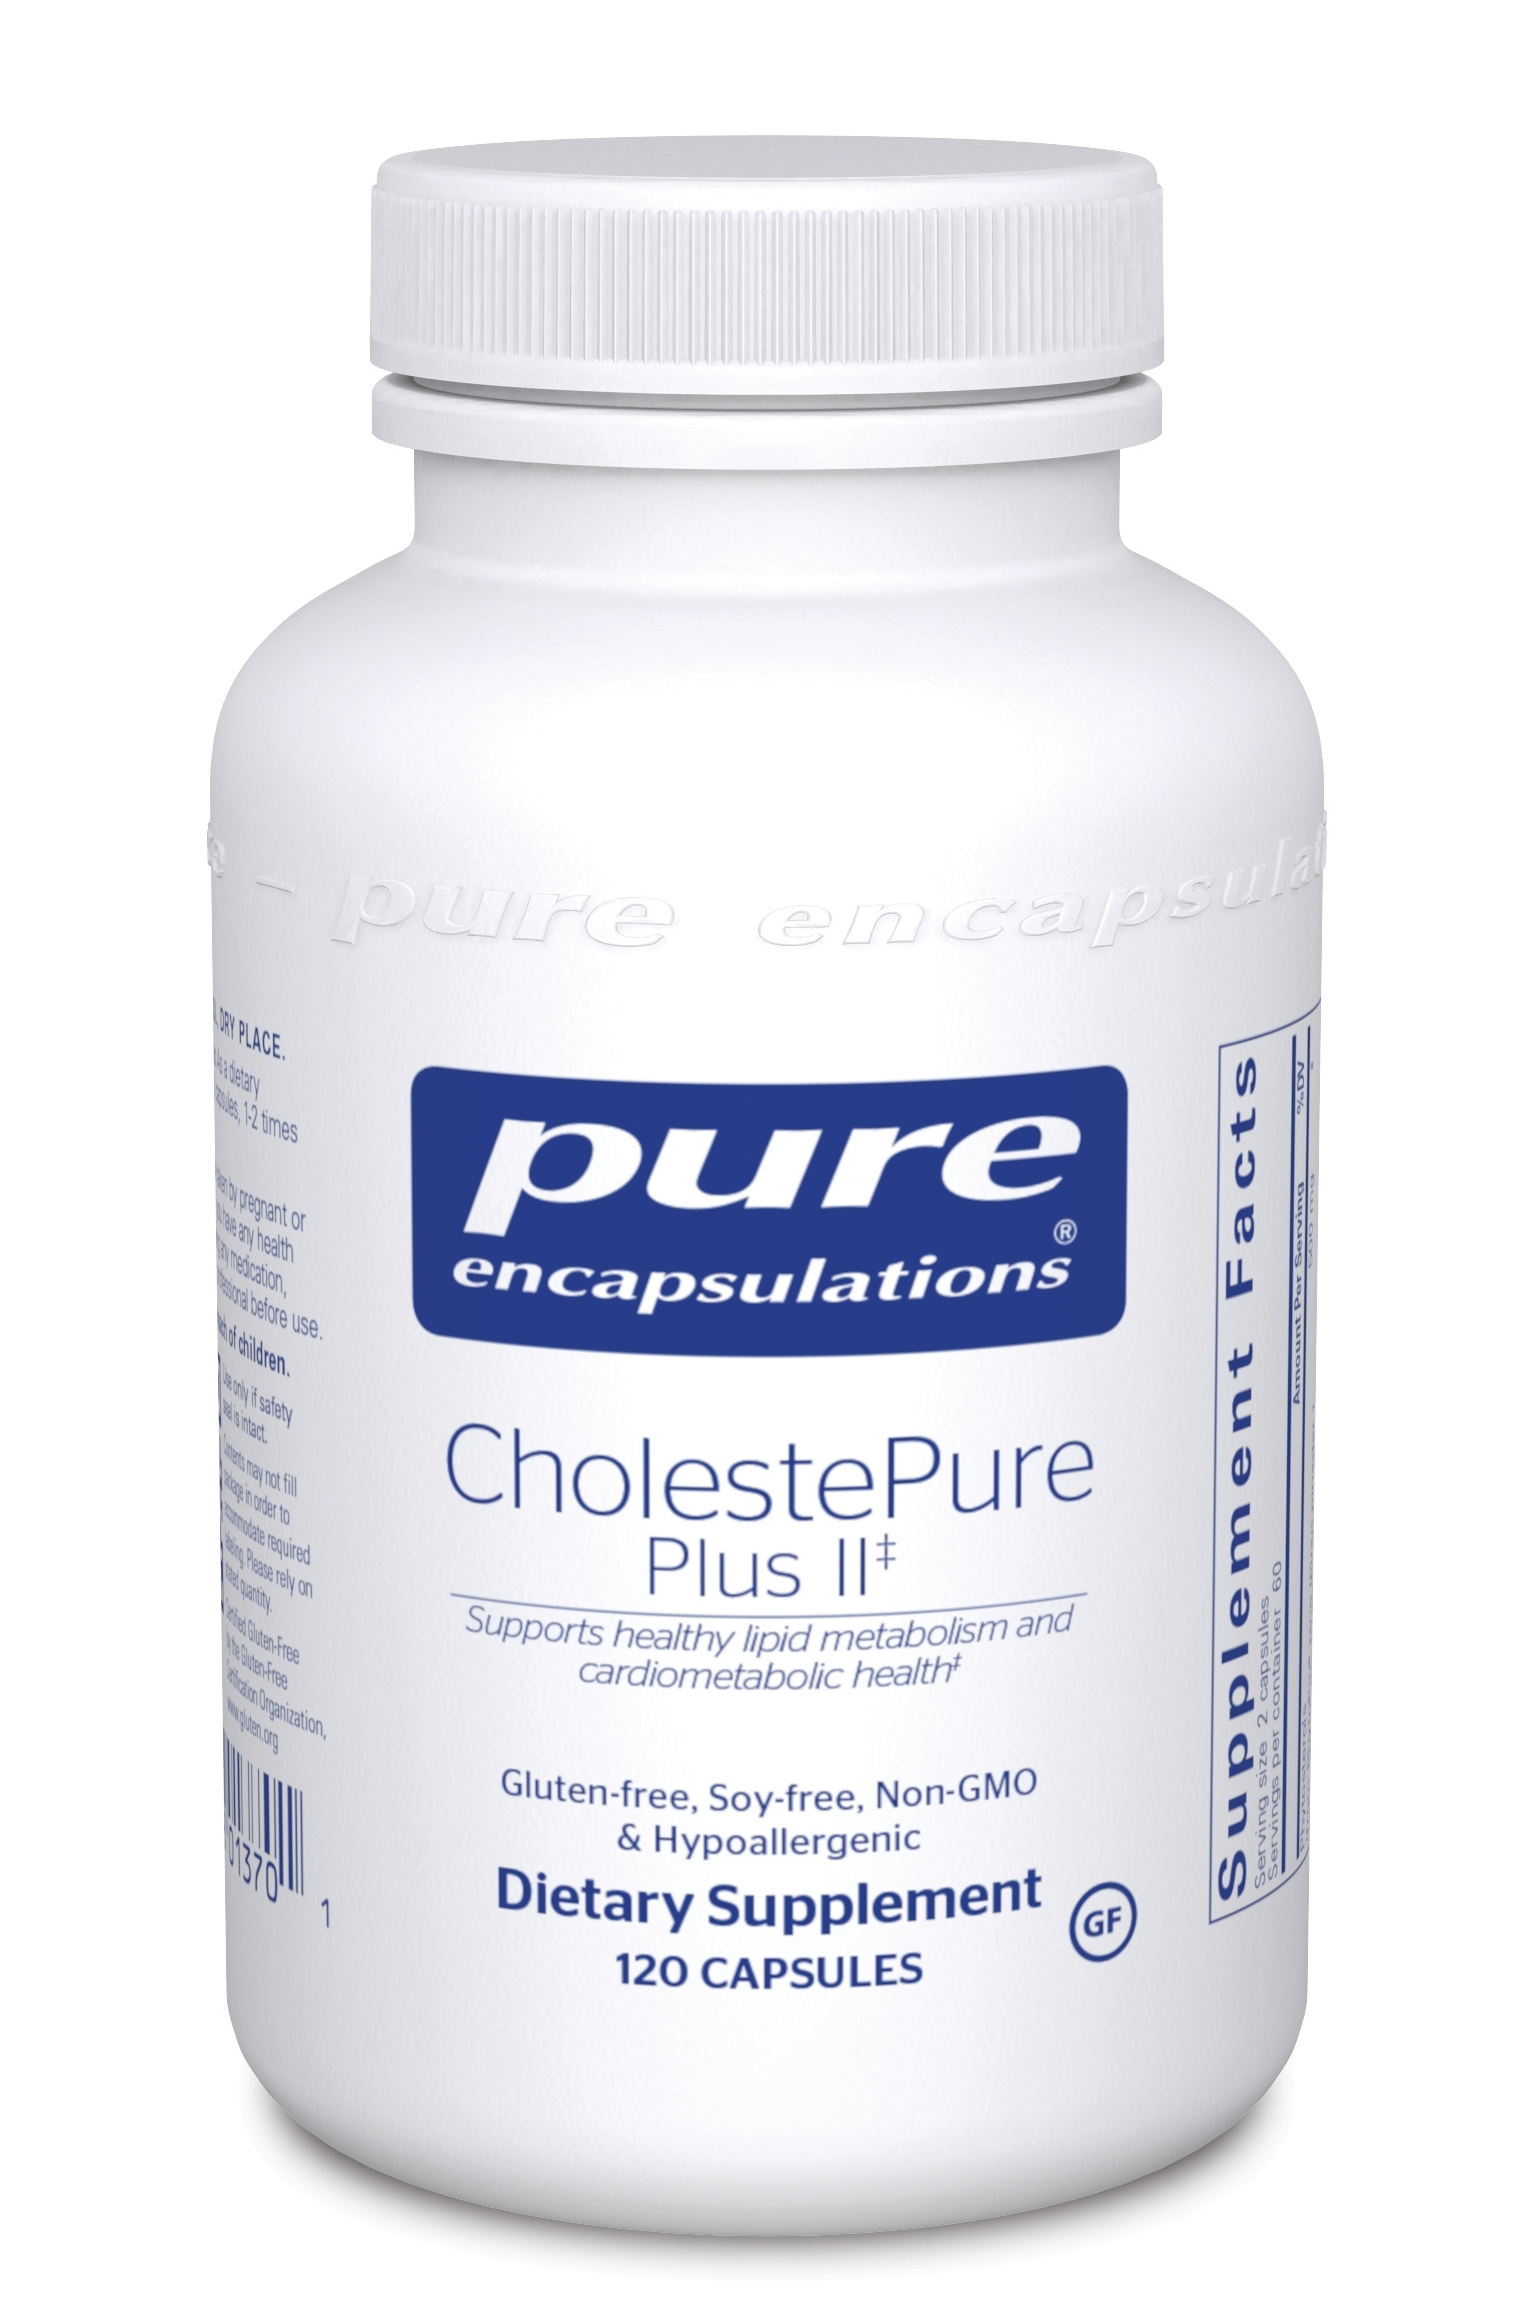 Pure Encapsulations CholestePure Plus II*